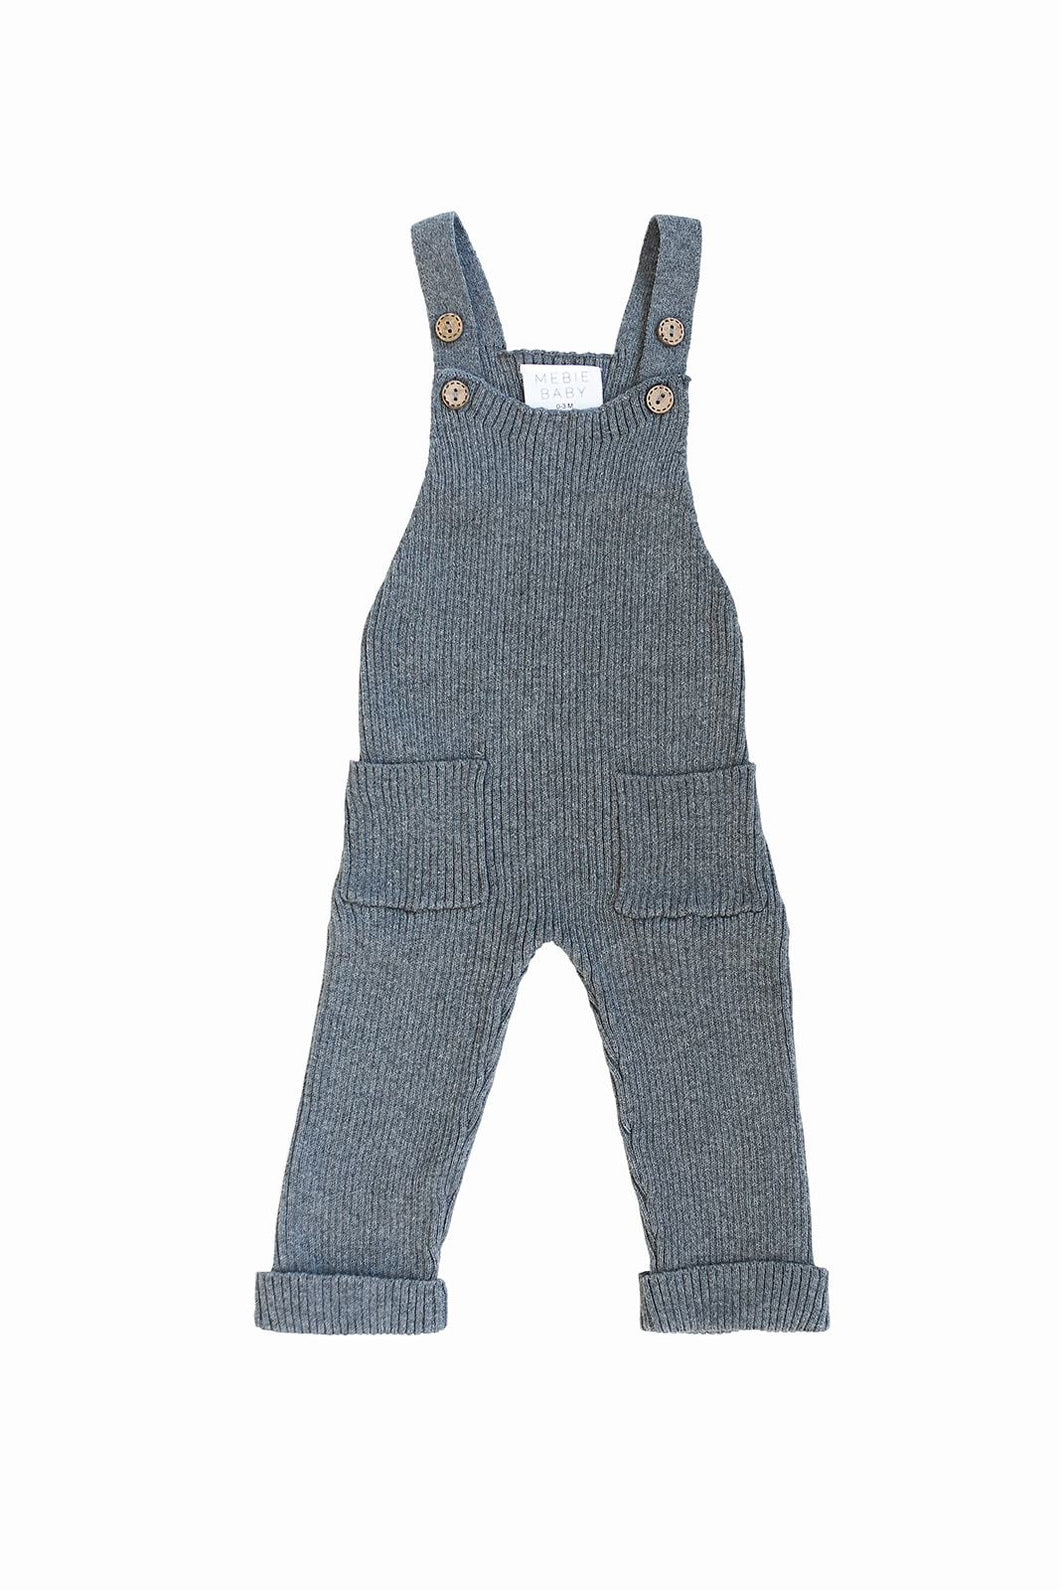 Knit Overalls in Charcoal